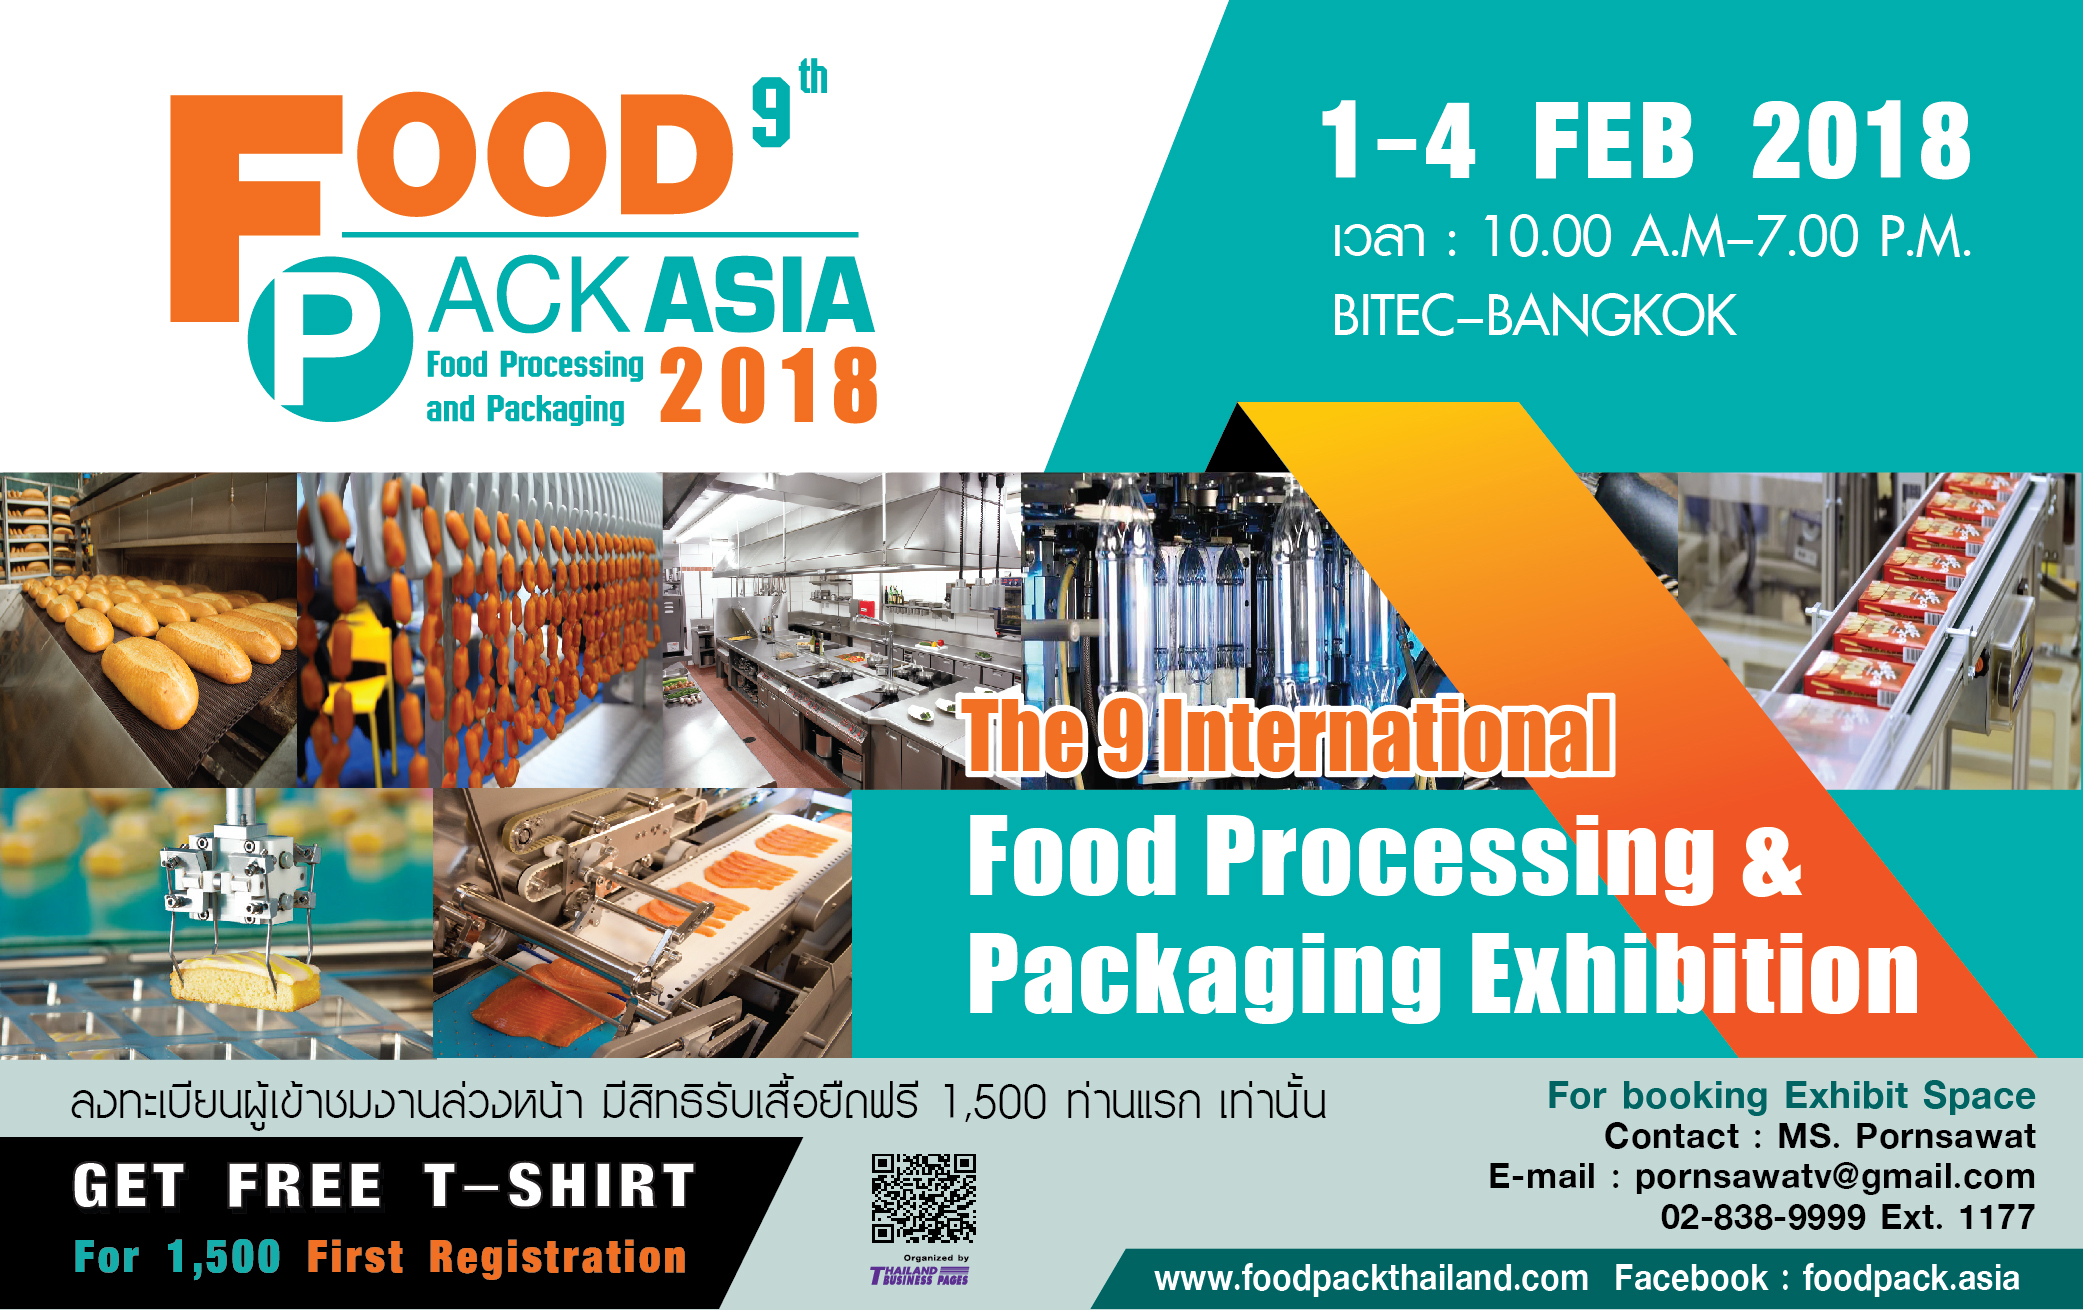 The 9 International Food Processing & Packaging Exhibition 2018